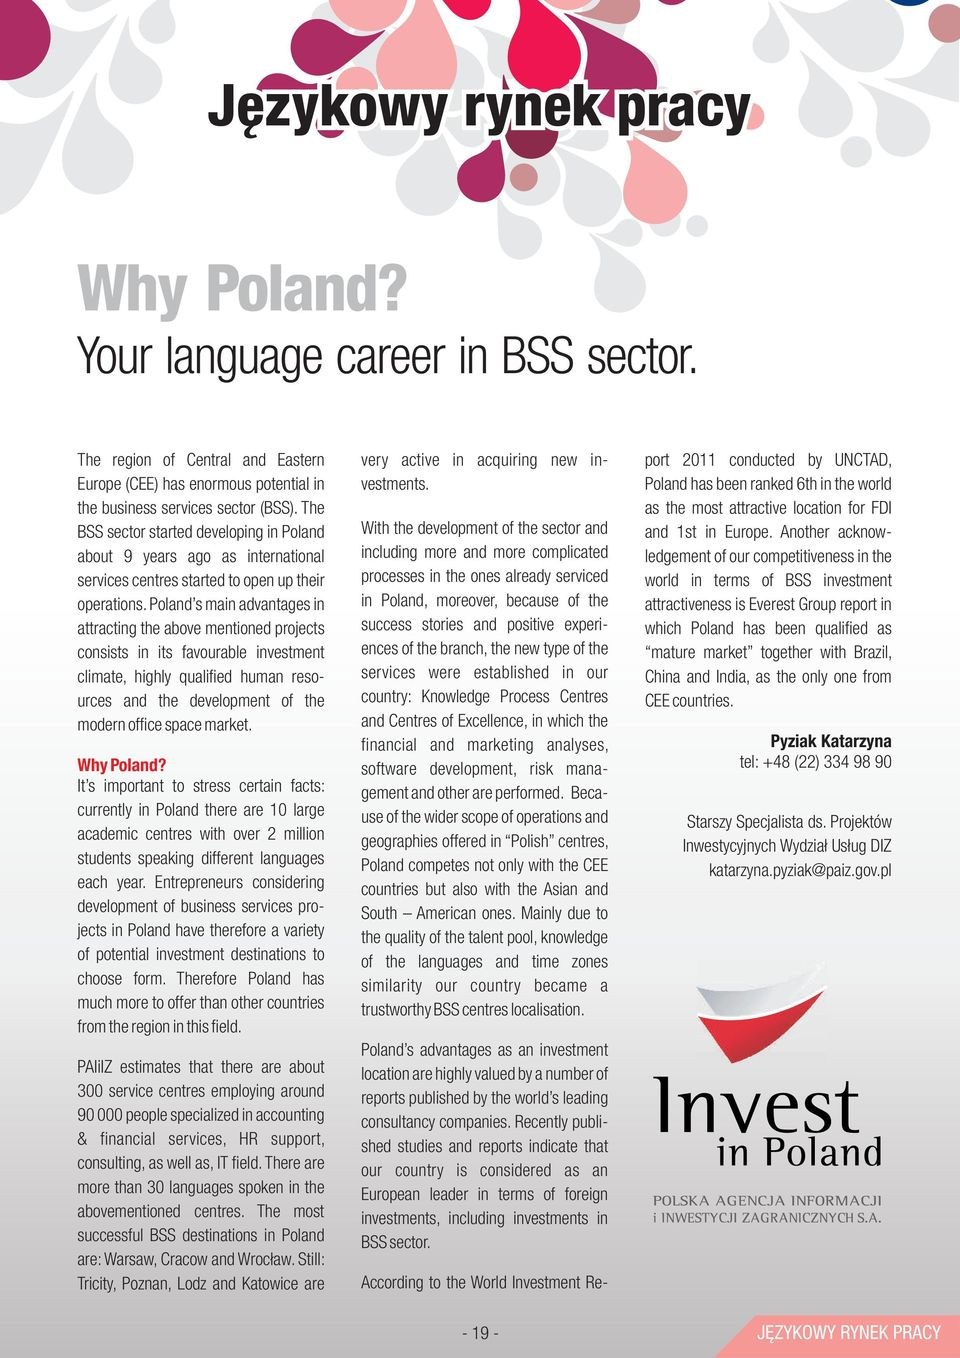 Poland has been ranked 6th in the world the business services sector (BSS).